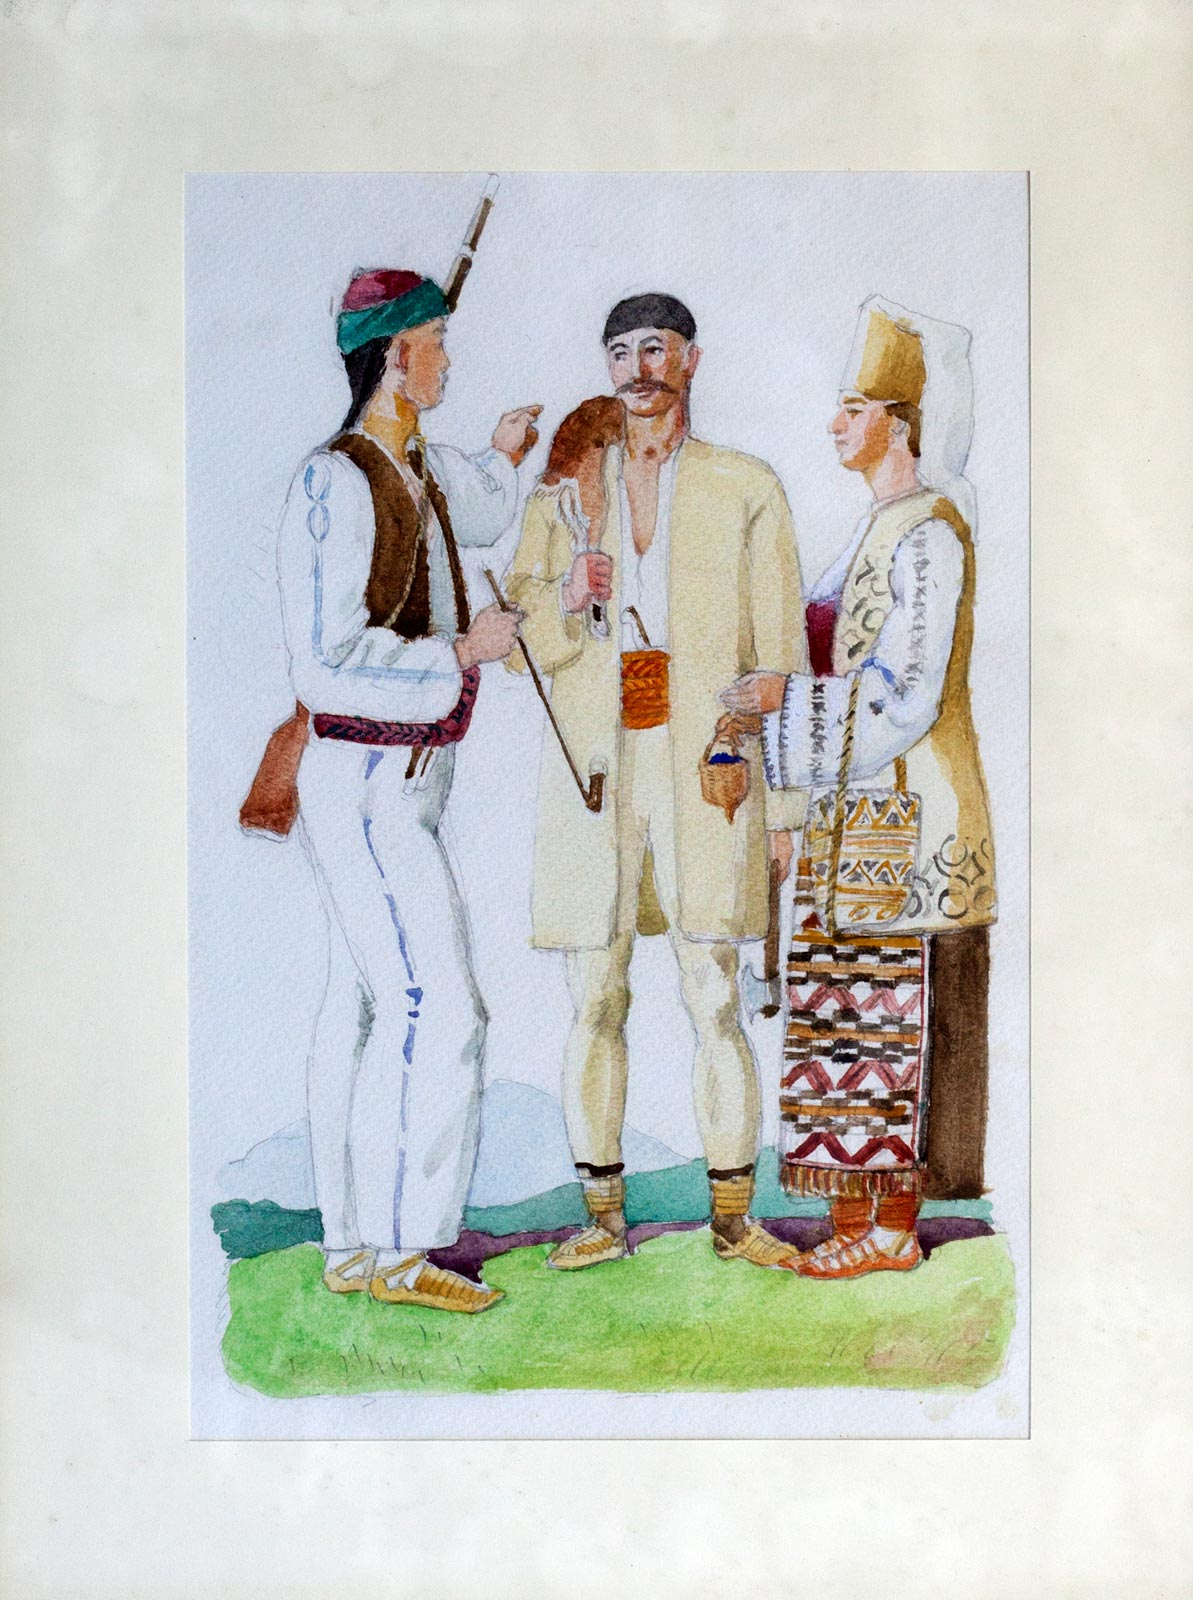 Peasants from Podunavlje